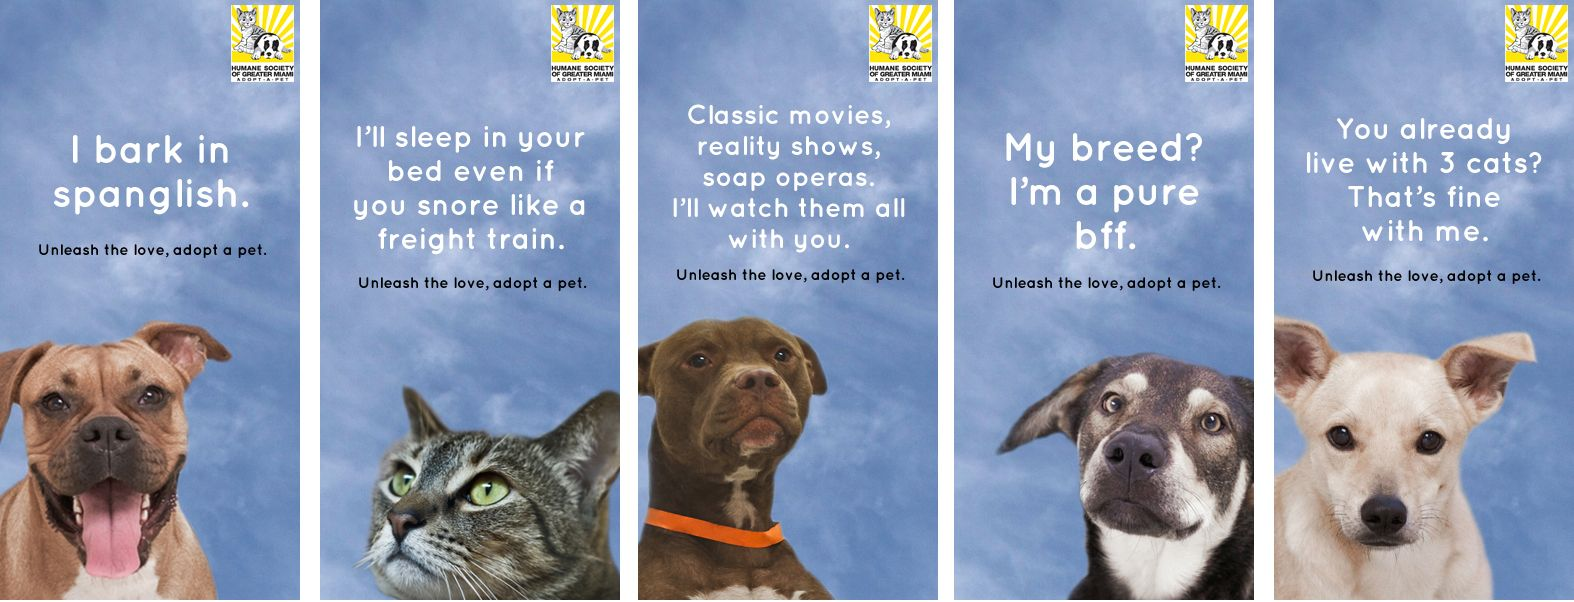 Alex Beker Humane Society Of Greater Miami Pet Adoption Campaign